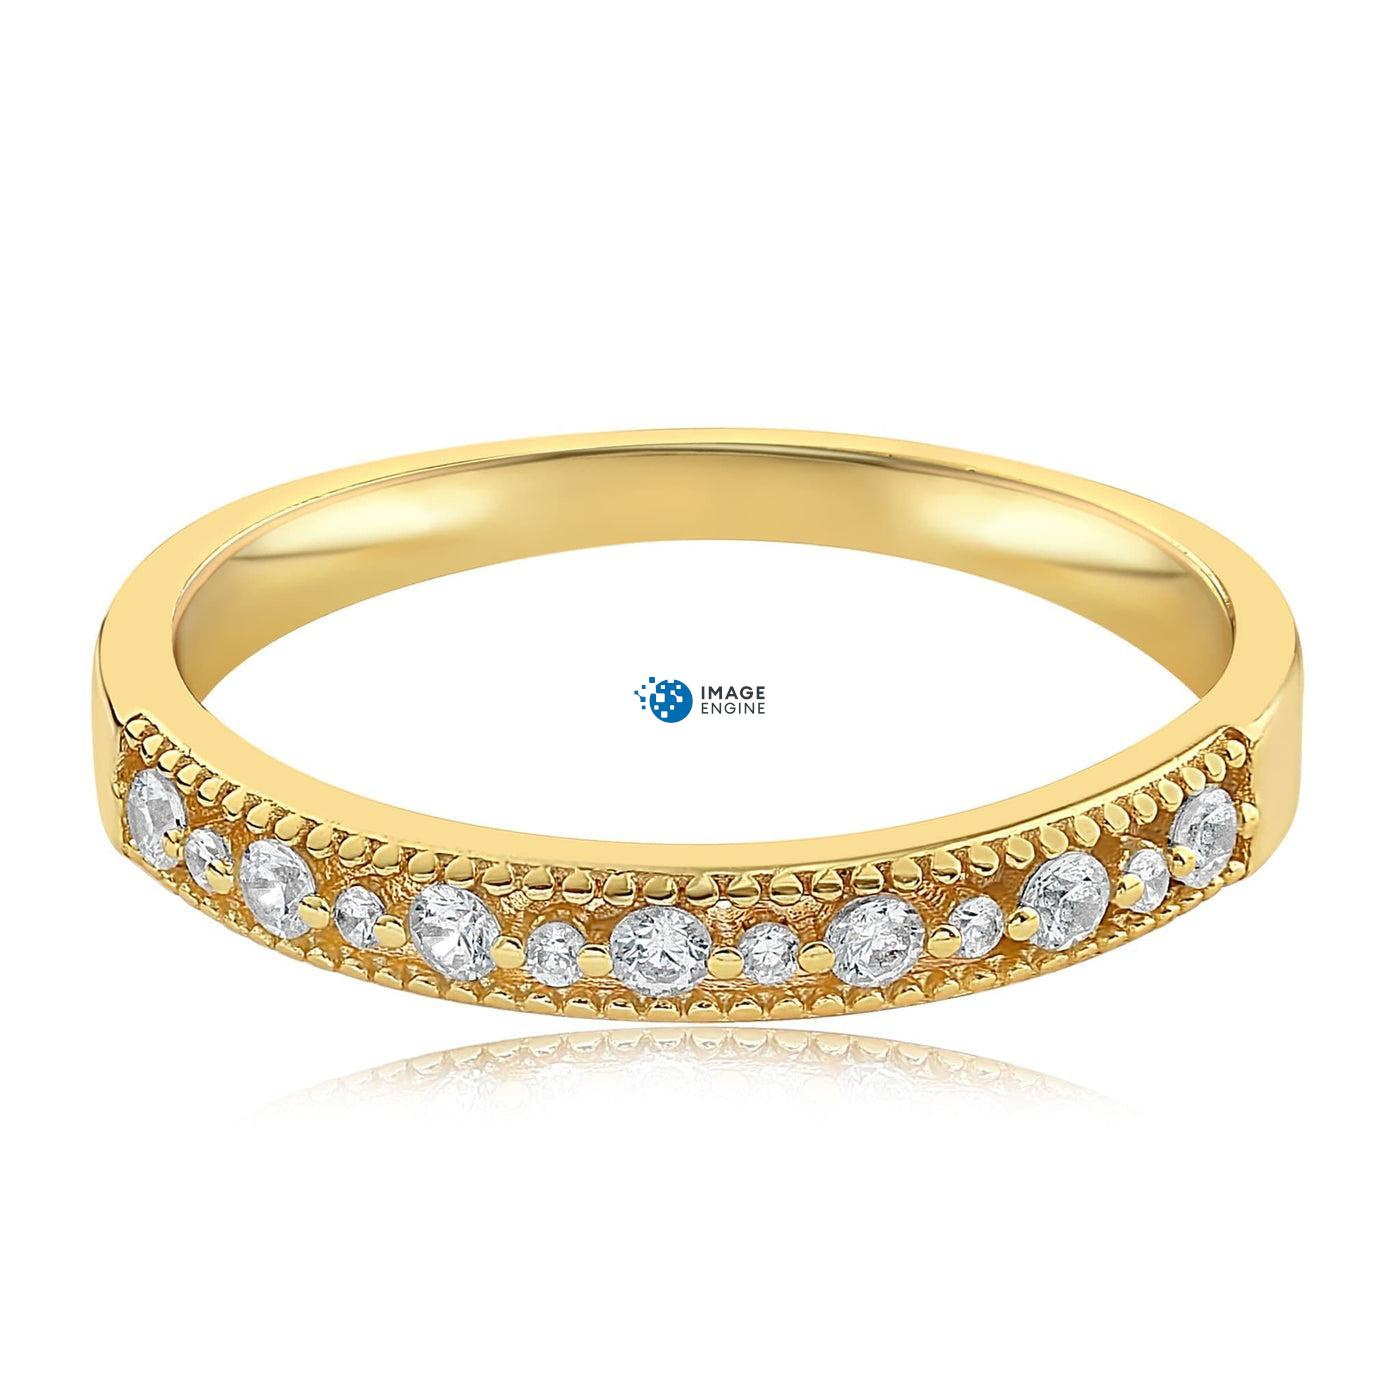 Joyce Layered Stack Ring - Front View Facing Down - 18K Yellow Gold Vermeil